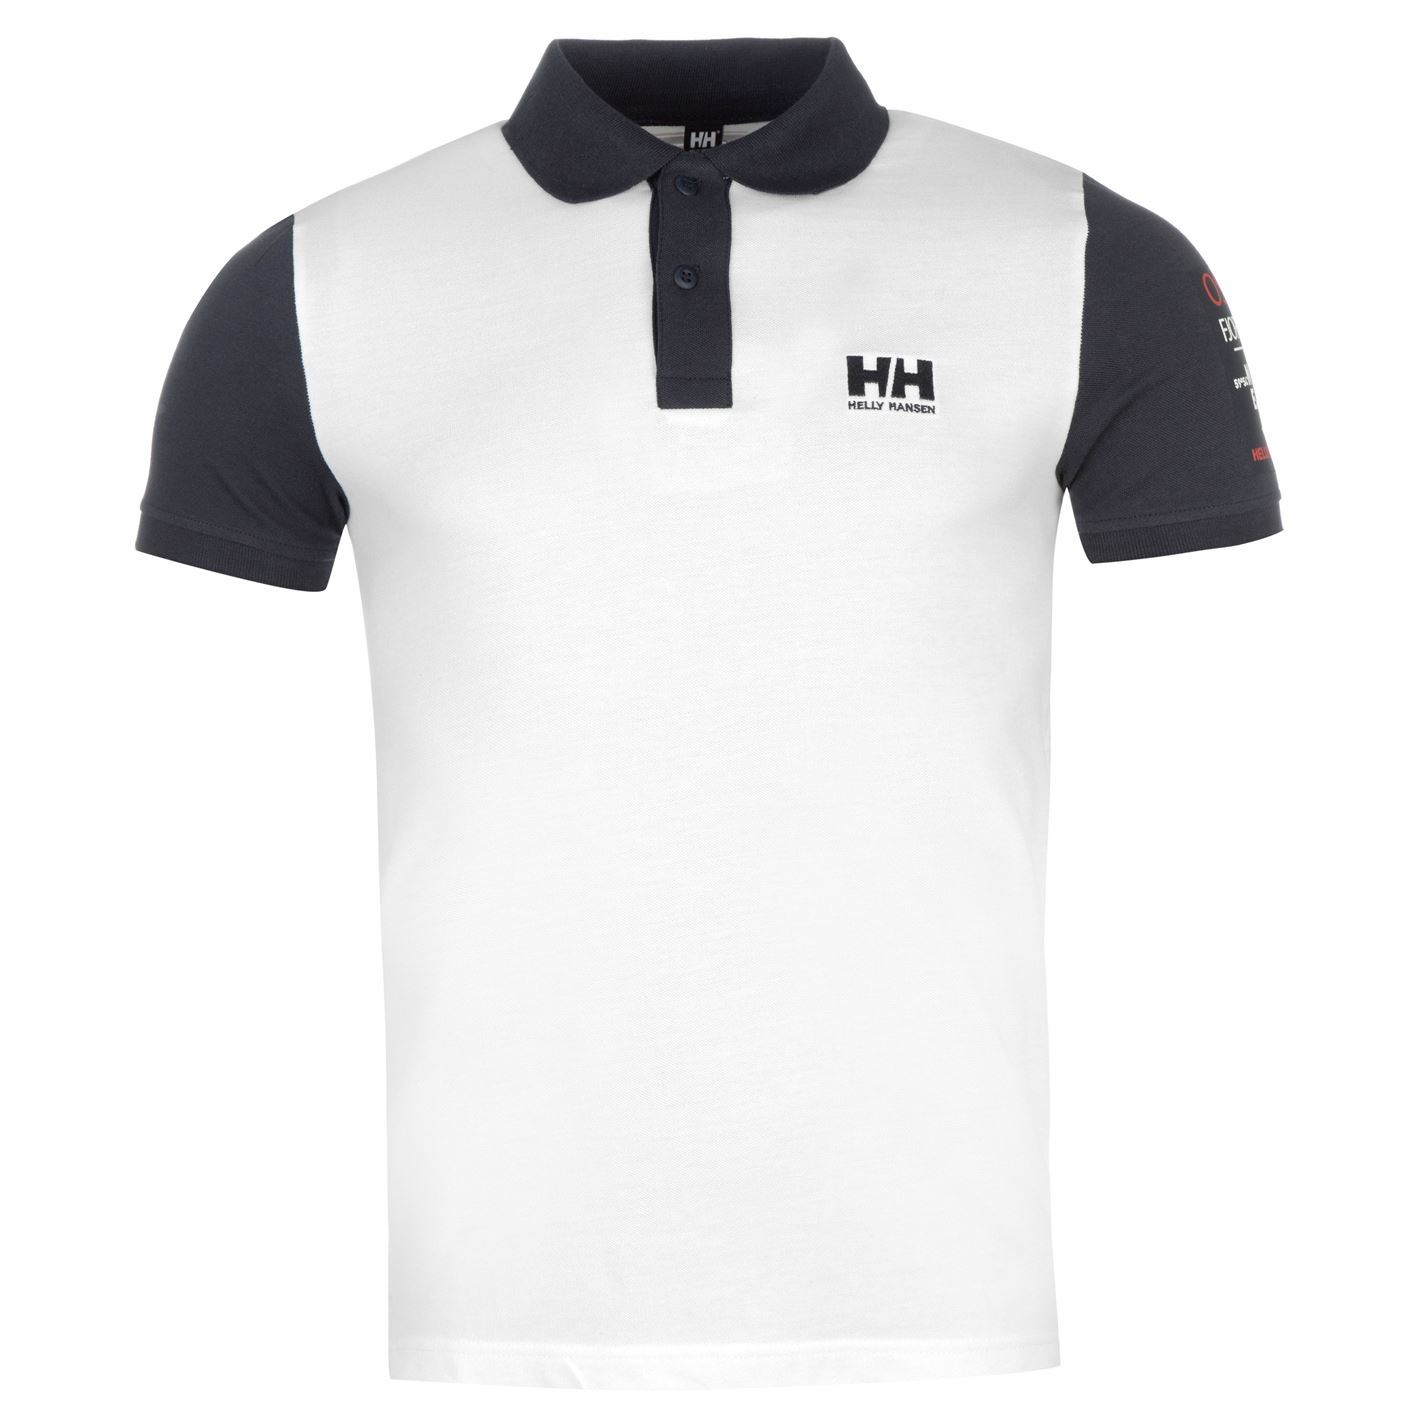 3abf5b54bf pas cher helly hansen polo shirt - Achat | gdgclub.oneloyalty.in